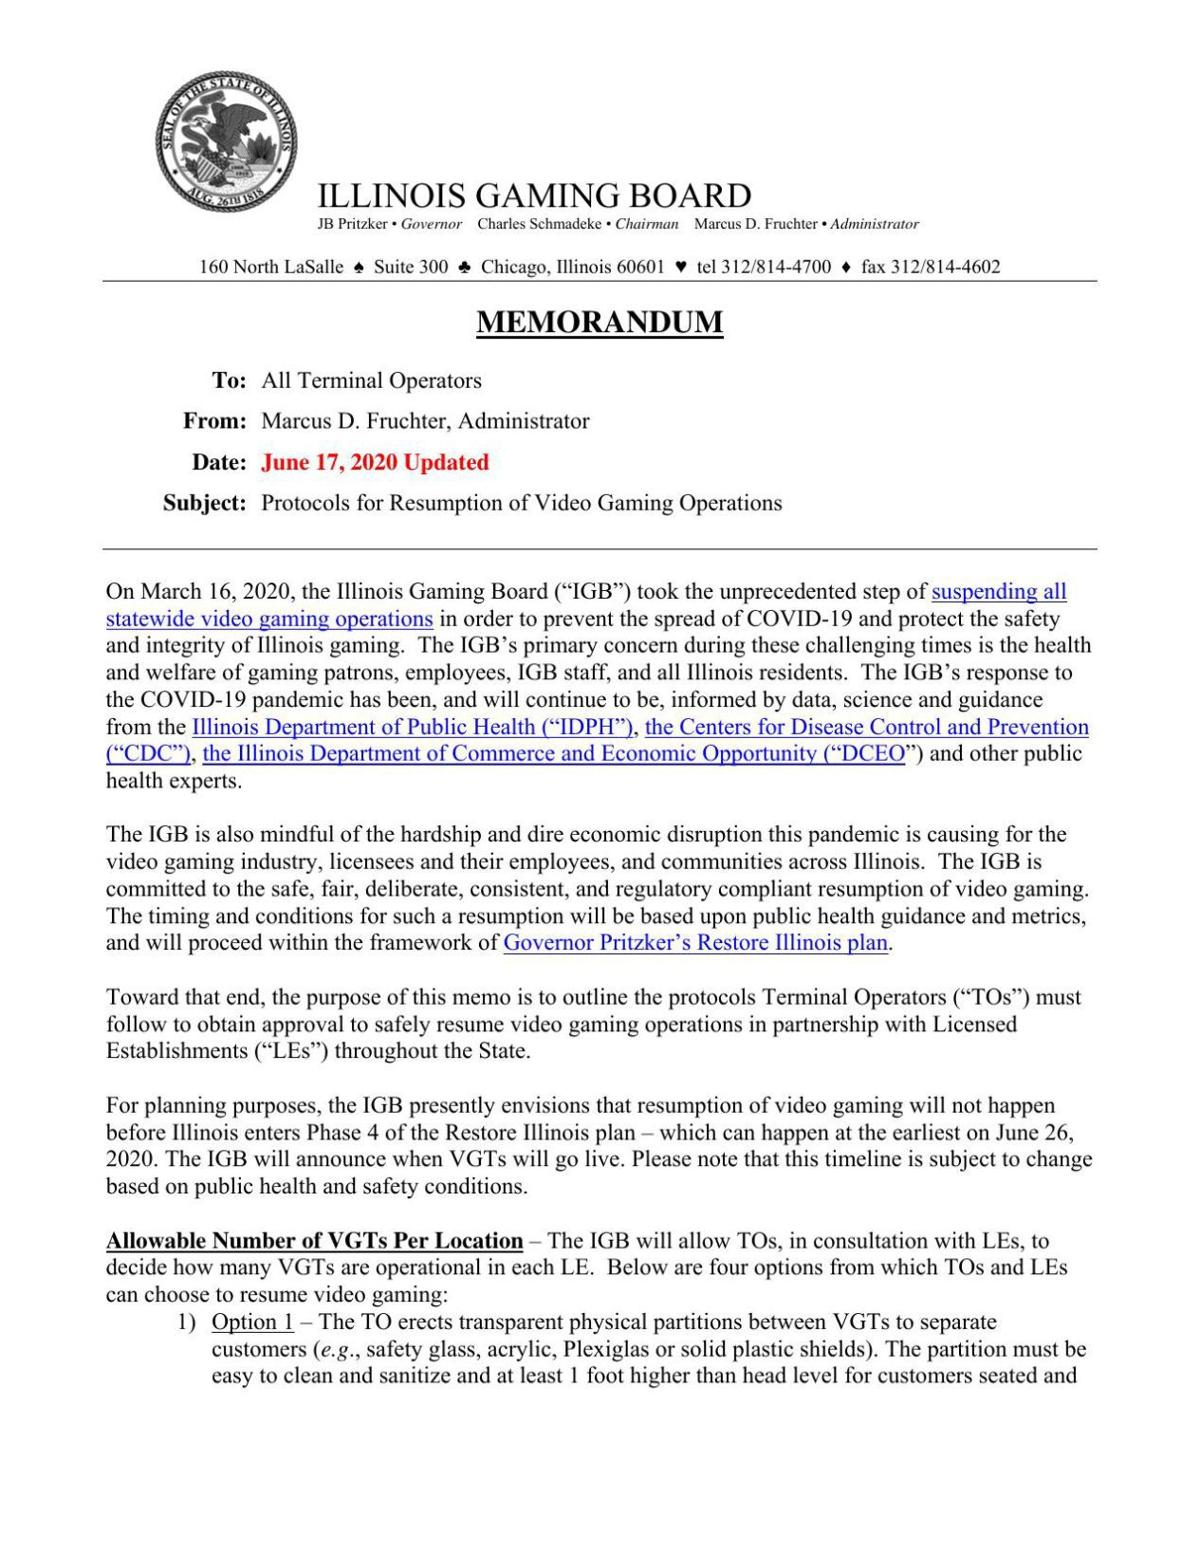 Illinois Gaming Board reopening protocol